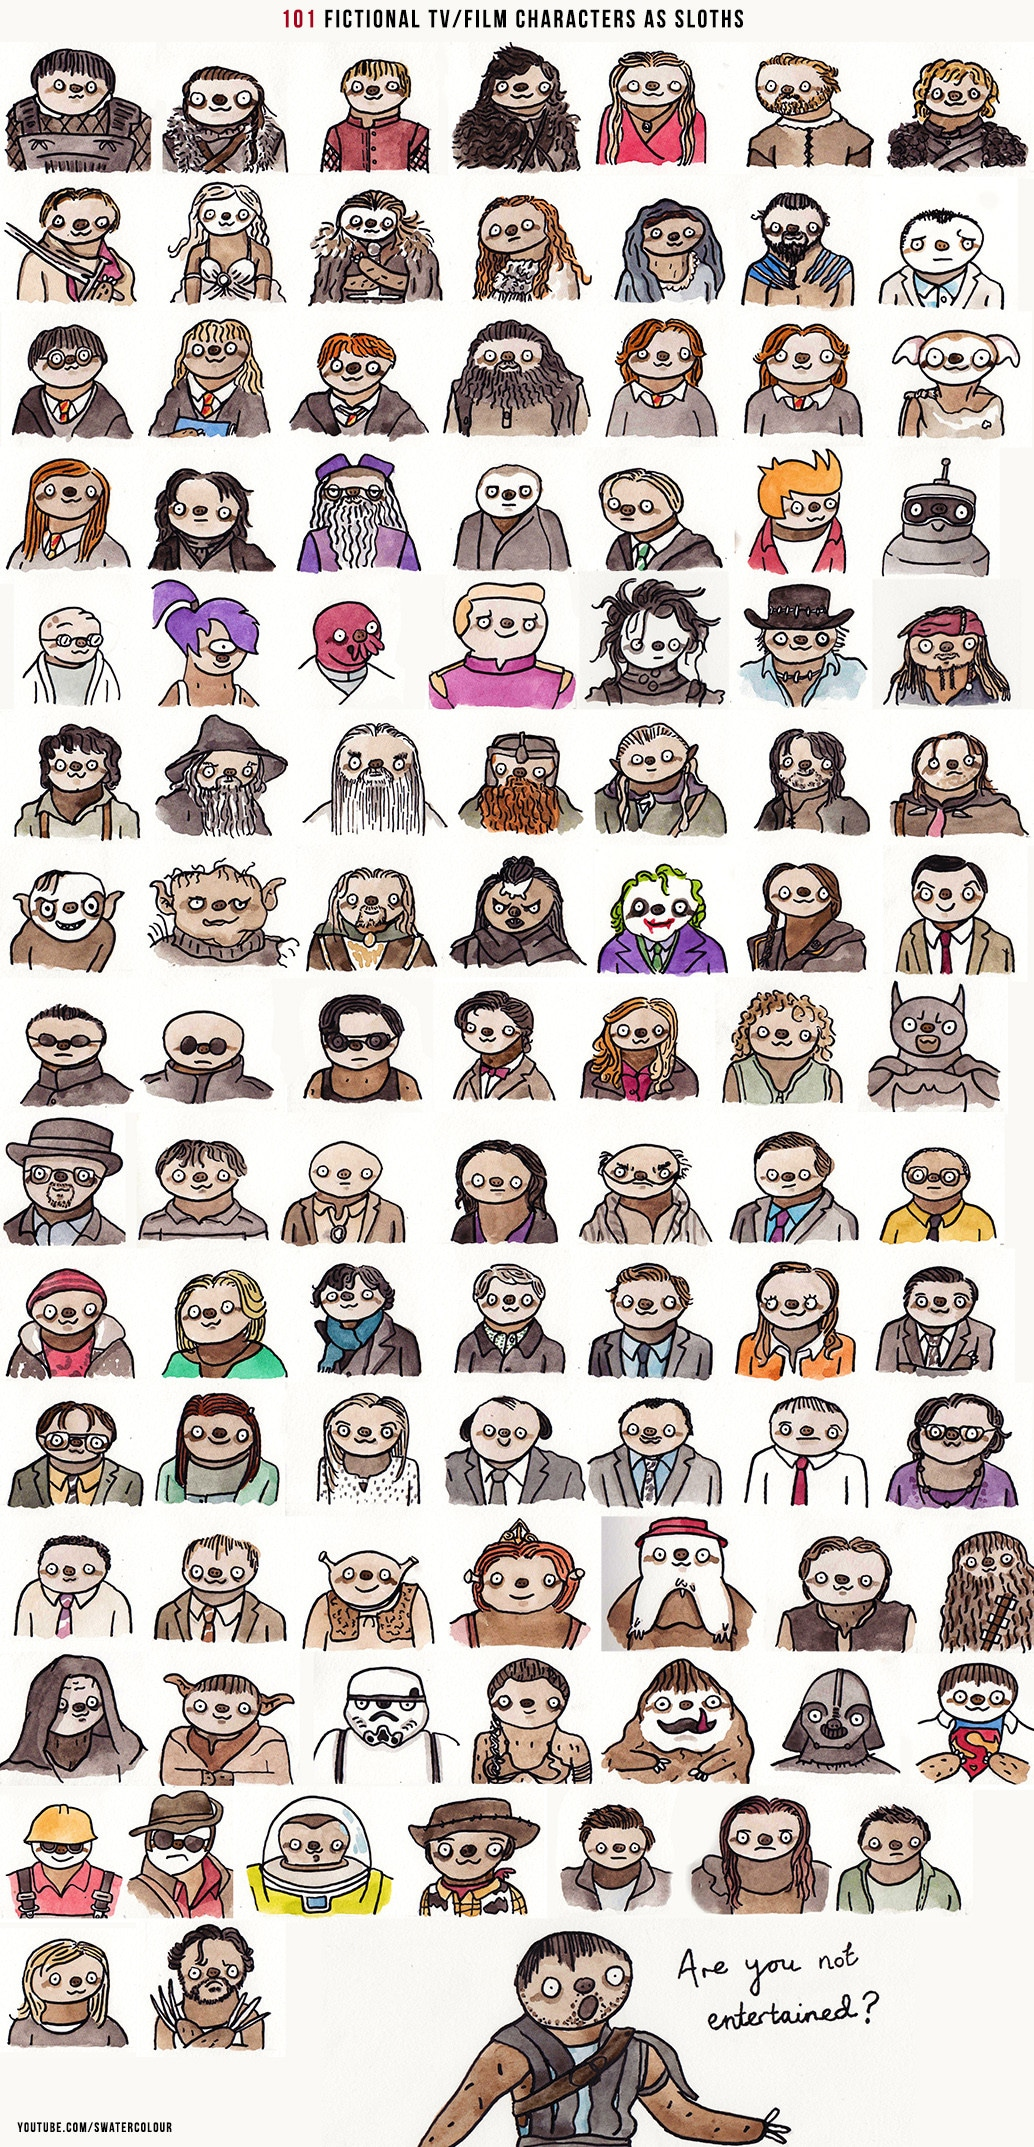 101-characters-as-sloths-chart